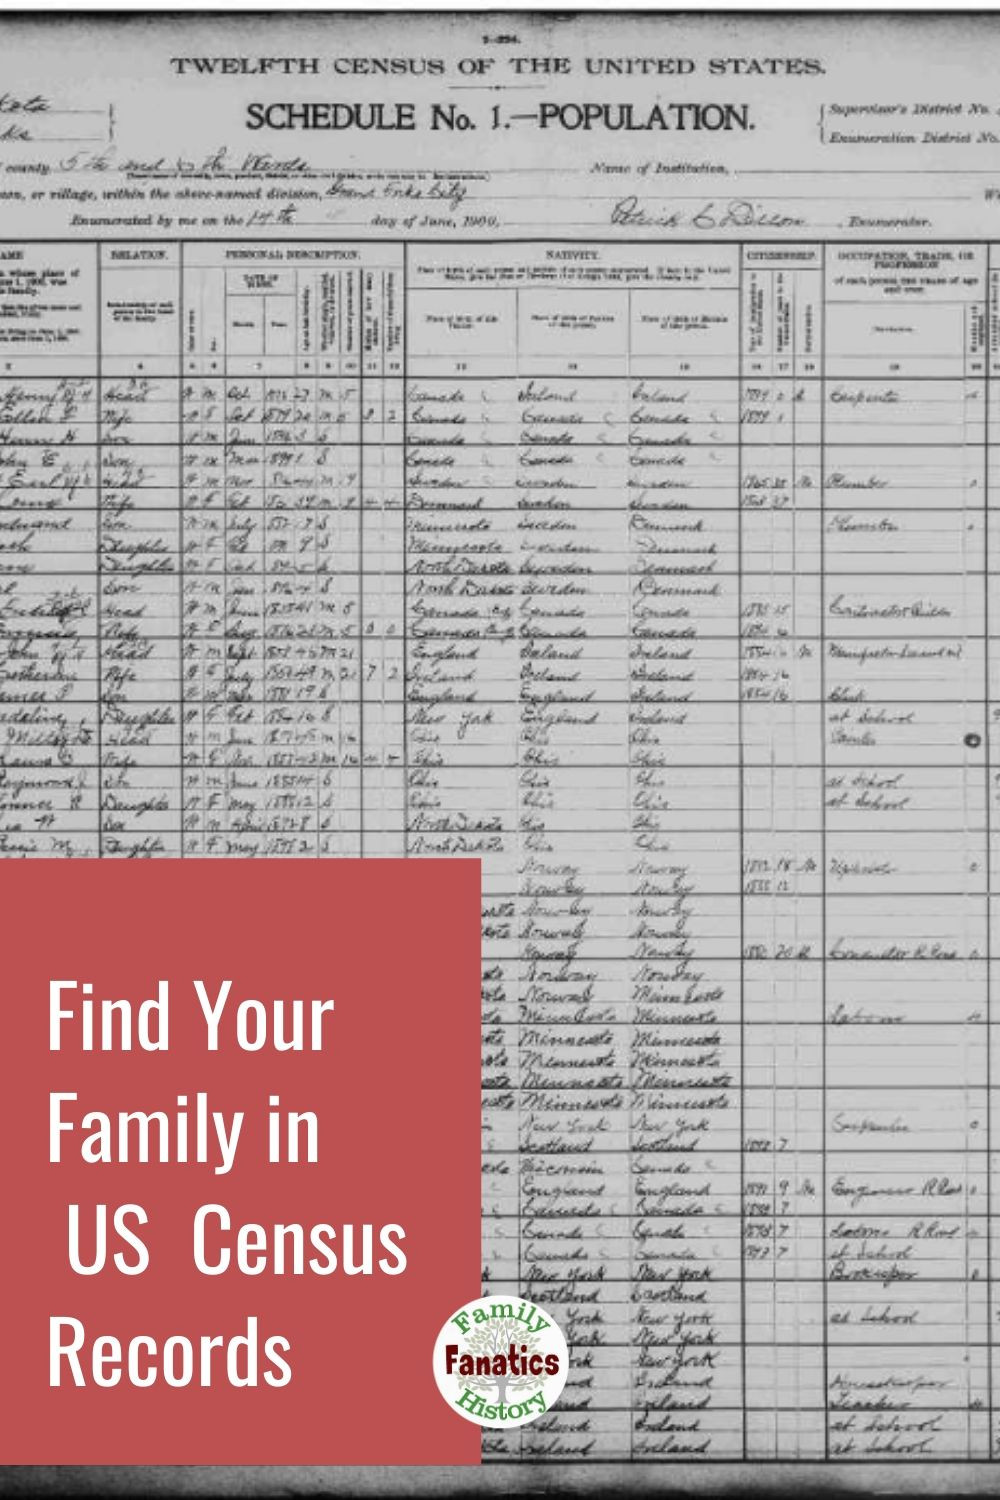 US Census Record and the title Find Your Family in US Census Records